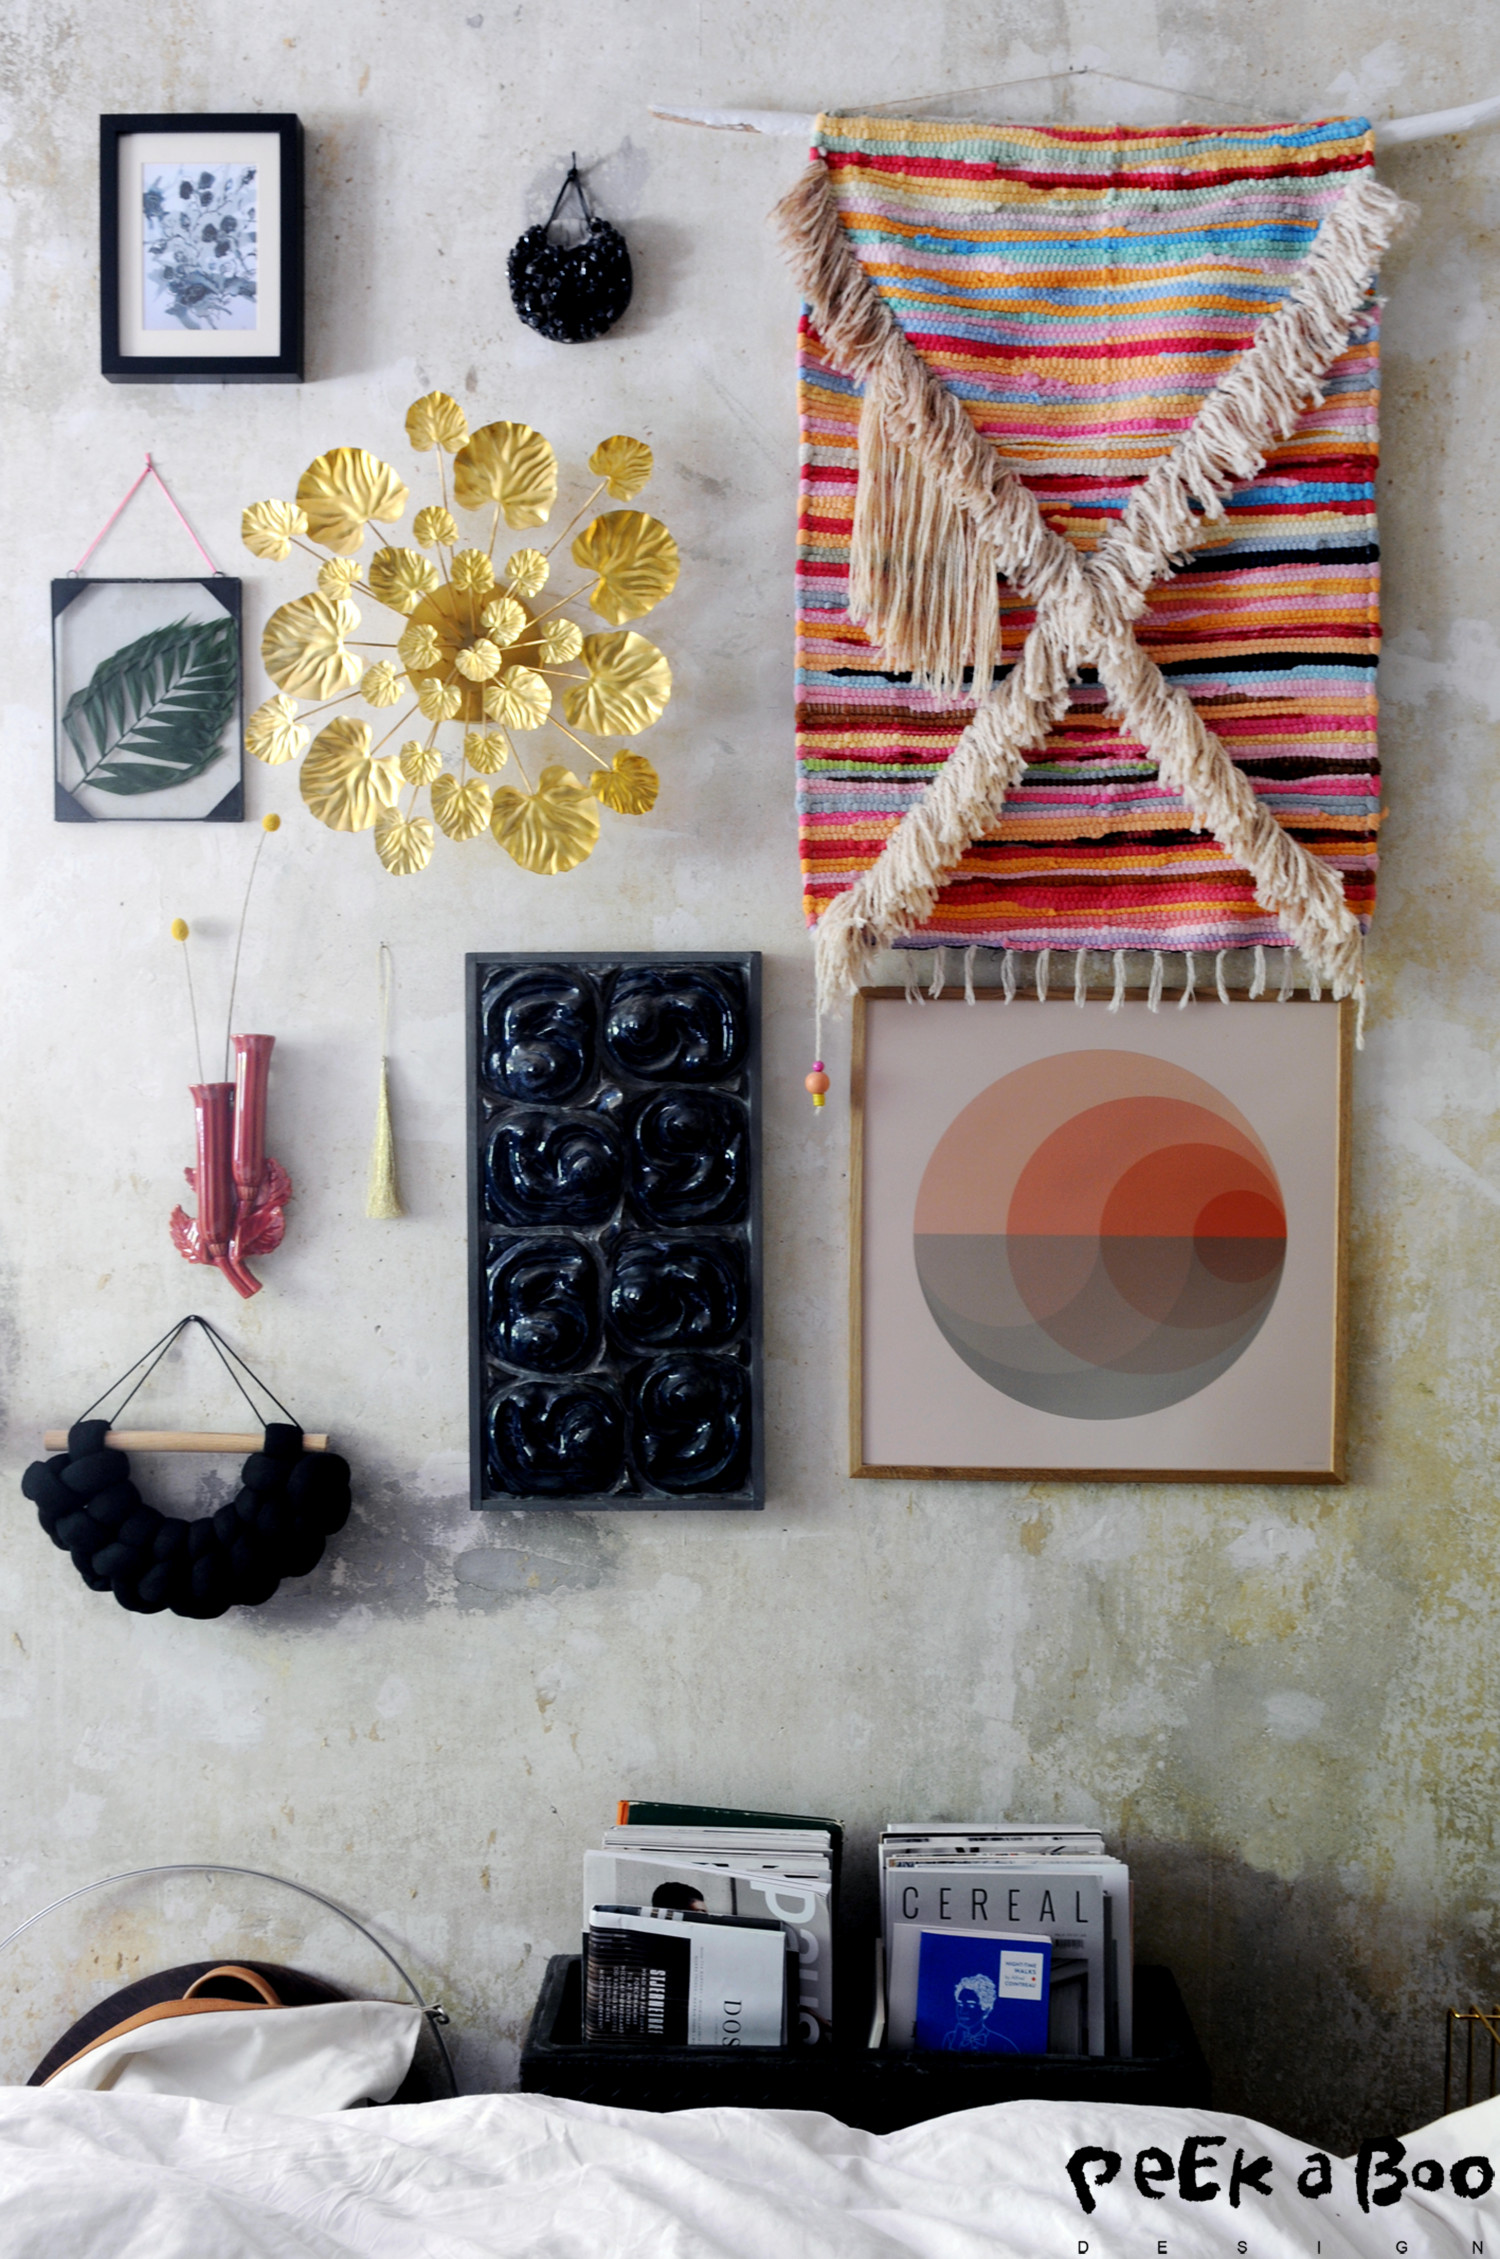 My gallerywall in the bedroom. From top left a small watercolor painting by Louise Dorph, next to that a small round ceramic artwork by Klejn & Strup, the textile wallhanger is made by me long time ago under that there is the poster Gradient by Vissevasse beside that to the right you see a blueish ceramic wallhanger, this is found secondhand and I have no clue who the artist is. And beside that there is a gold tassel, just because I like it. And beside that a vintage flowervase in art nouveau look this is a fleamarket find and below that you see a textile wallhanger from Klejn & Strup. The metal frame with double layer of glass is from Ib Laursen and I added the palm leaf myself, and in the middle you see the beautiful golden metal flower from Eden Outcast.